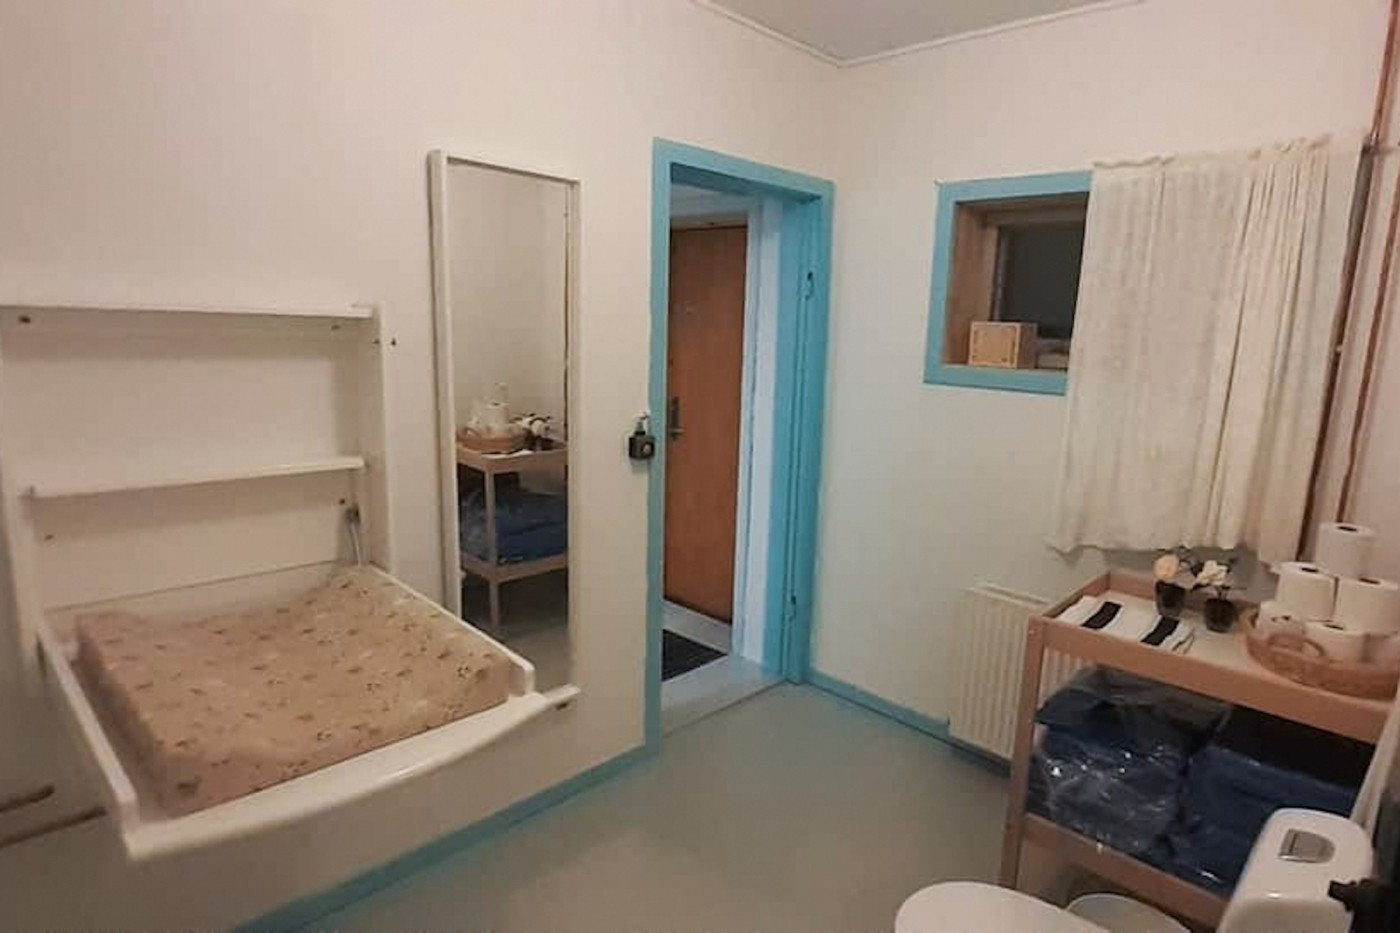 Bathroom with changing table. Photo by Mikami Hostel